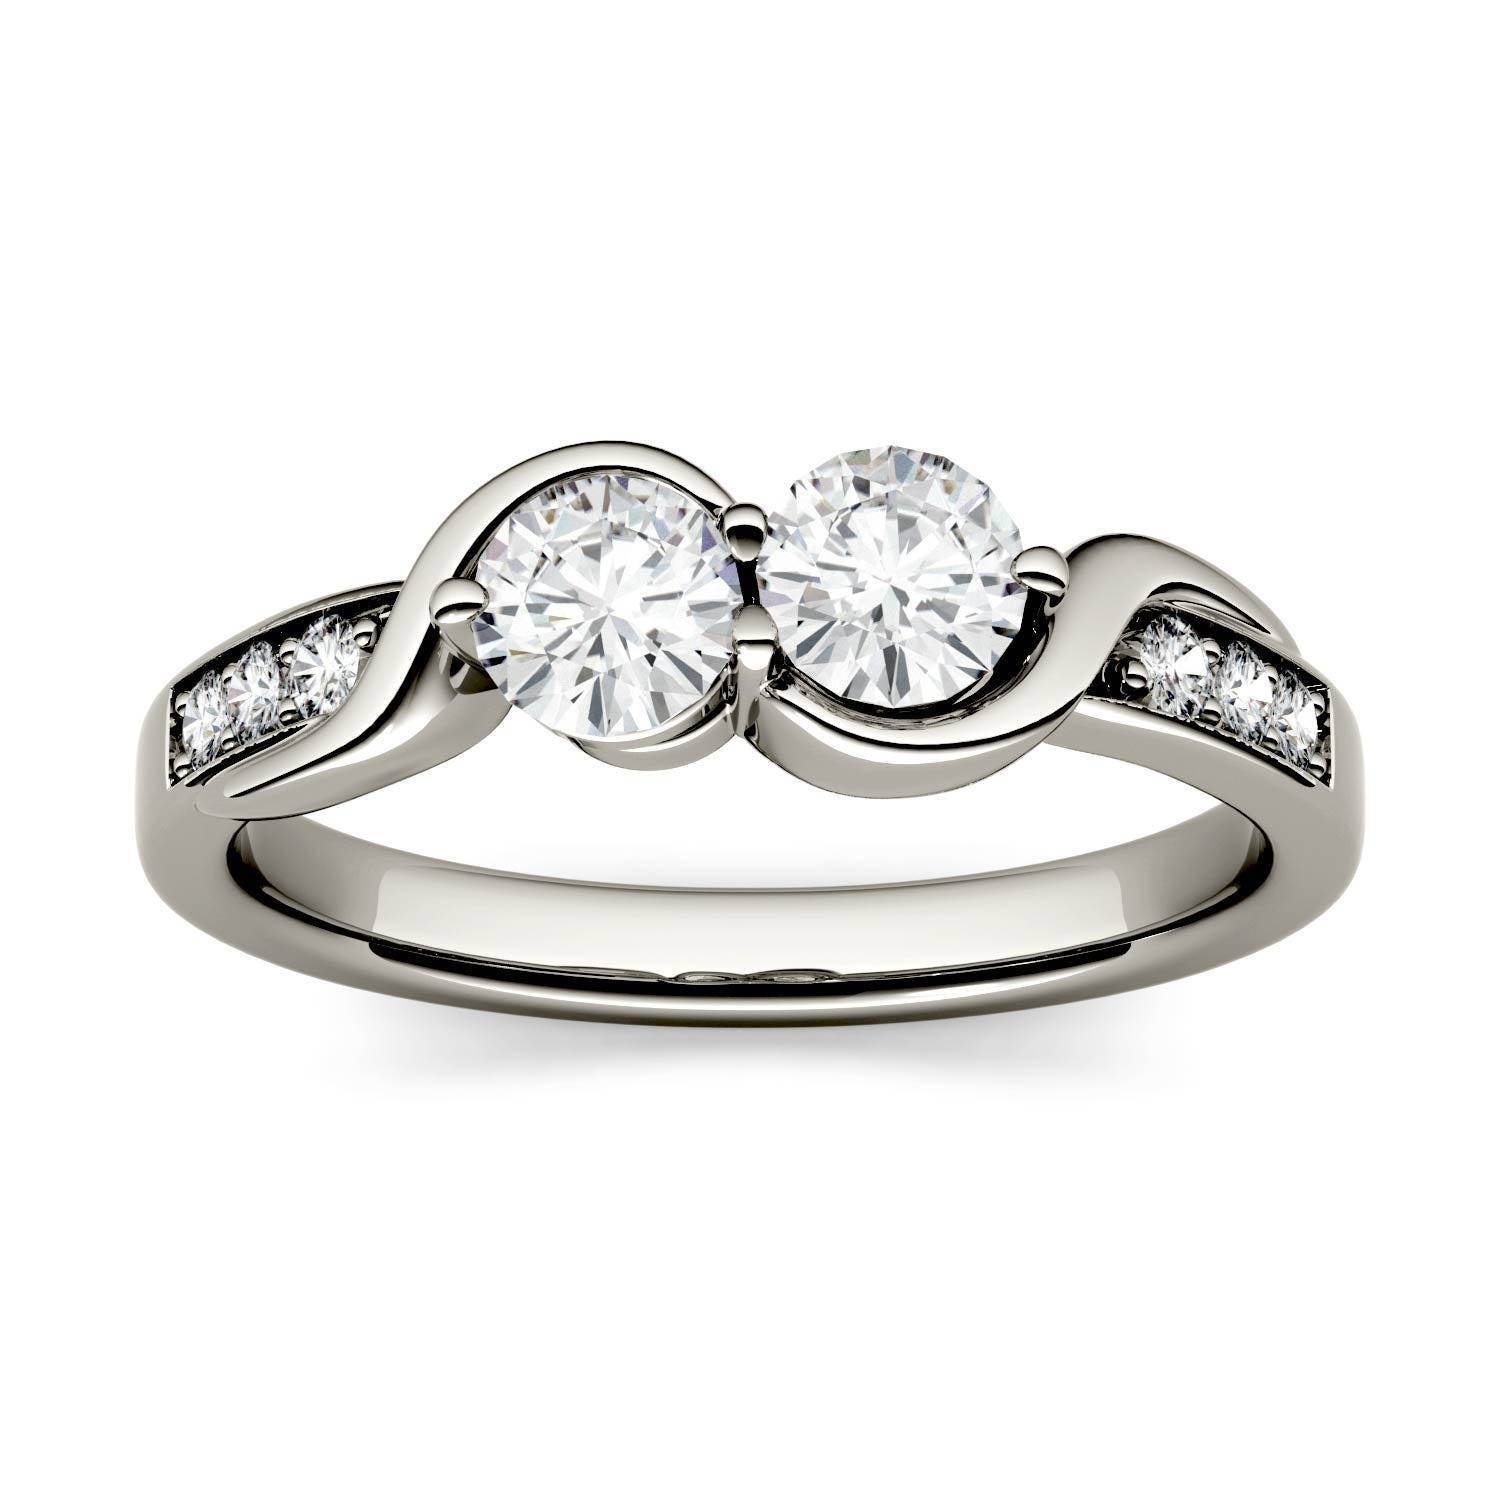 Charles & Colvard Two Stone Swirl with Side Accents Wedding Ring in 14K White Gold, Size: 5, 1.12CTW Round Forever One - Colorless Moissanite Charles & Colvard  - White Gold - Size: 5